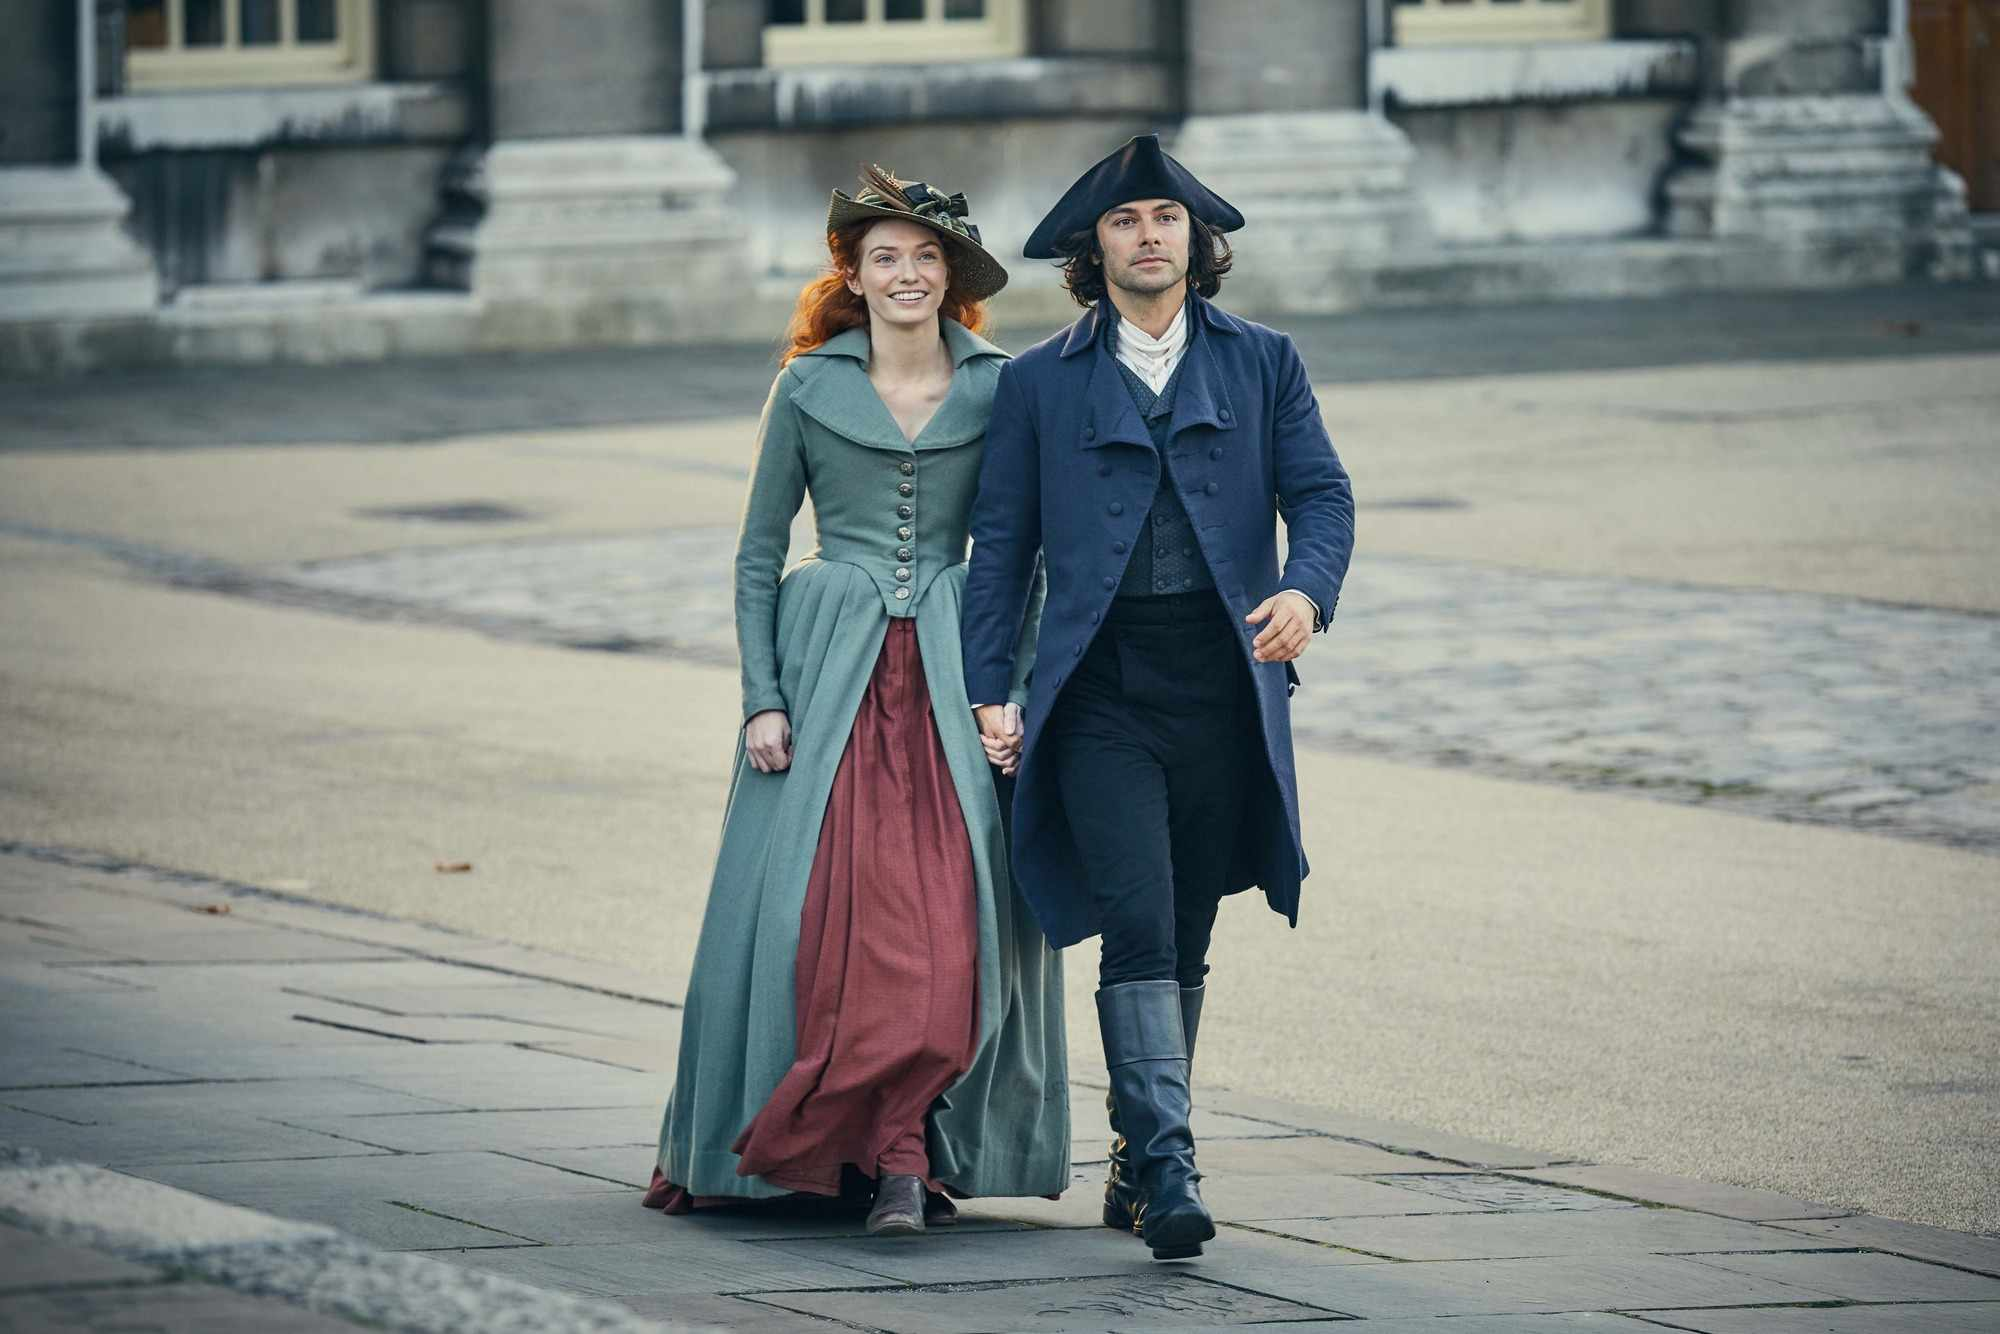 Poldark. (Image by BBC/Mammoth Screen/Mike Hogan)